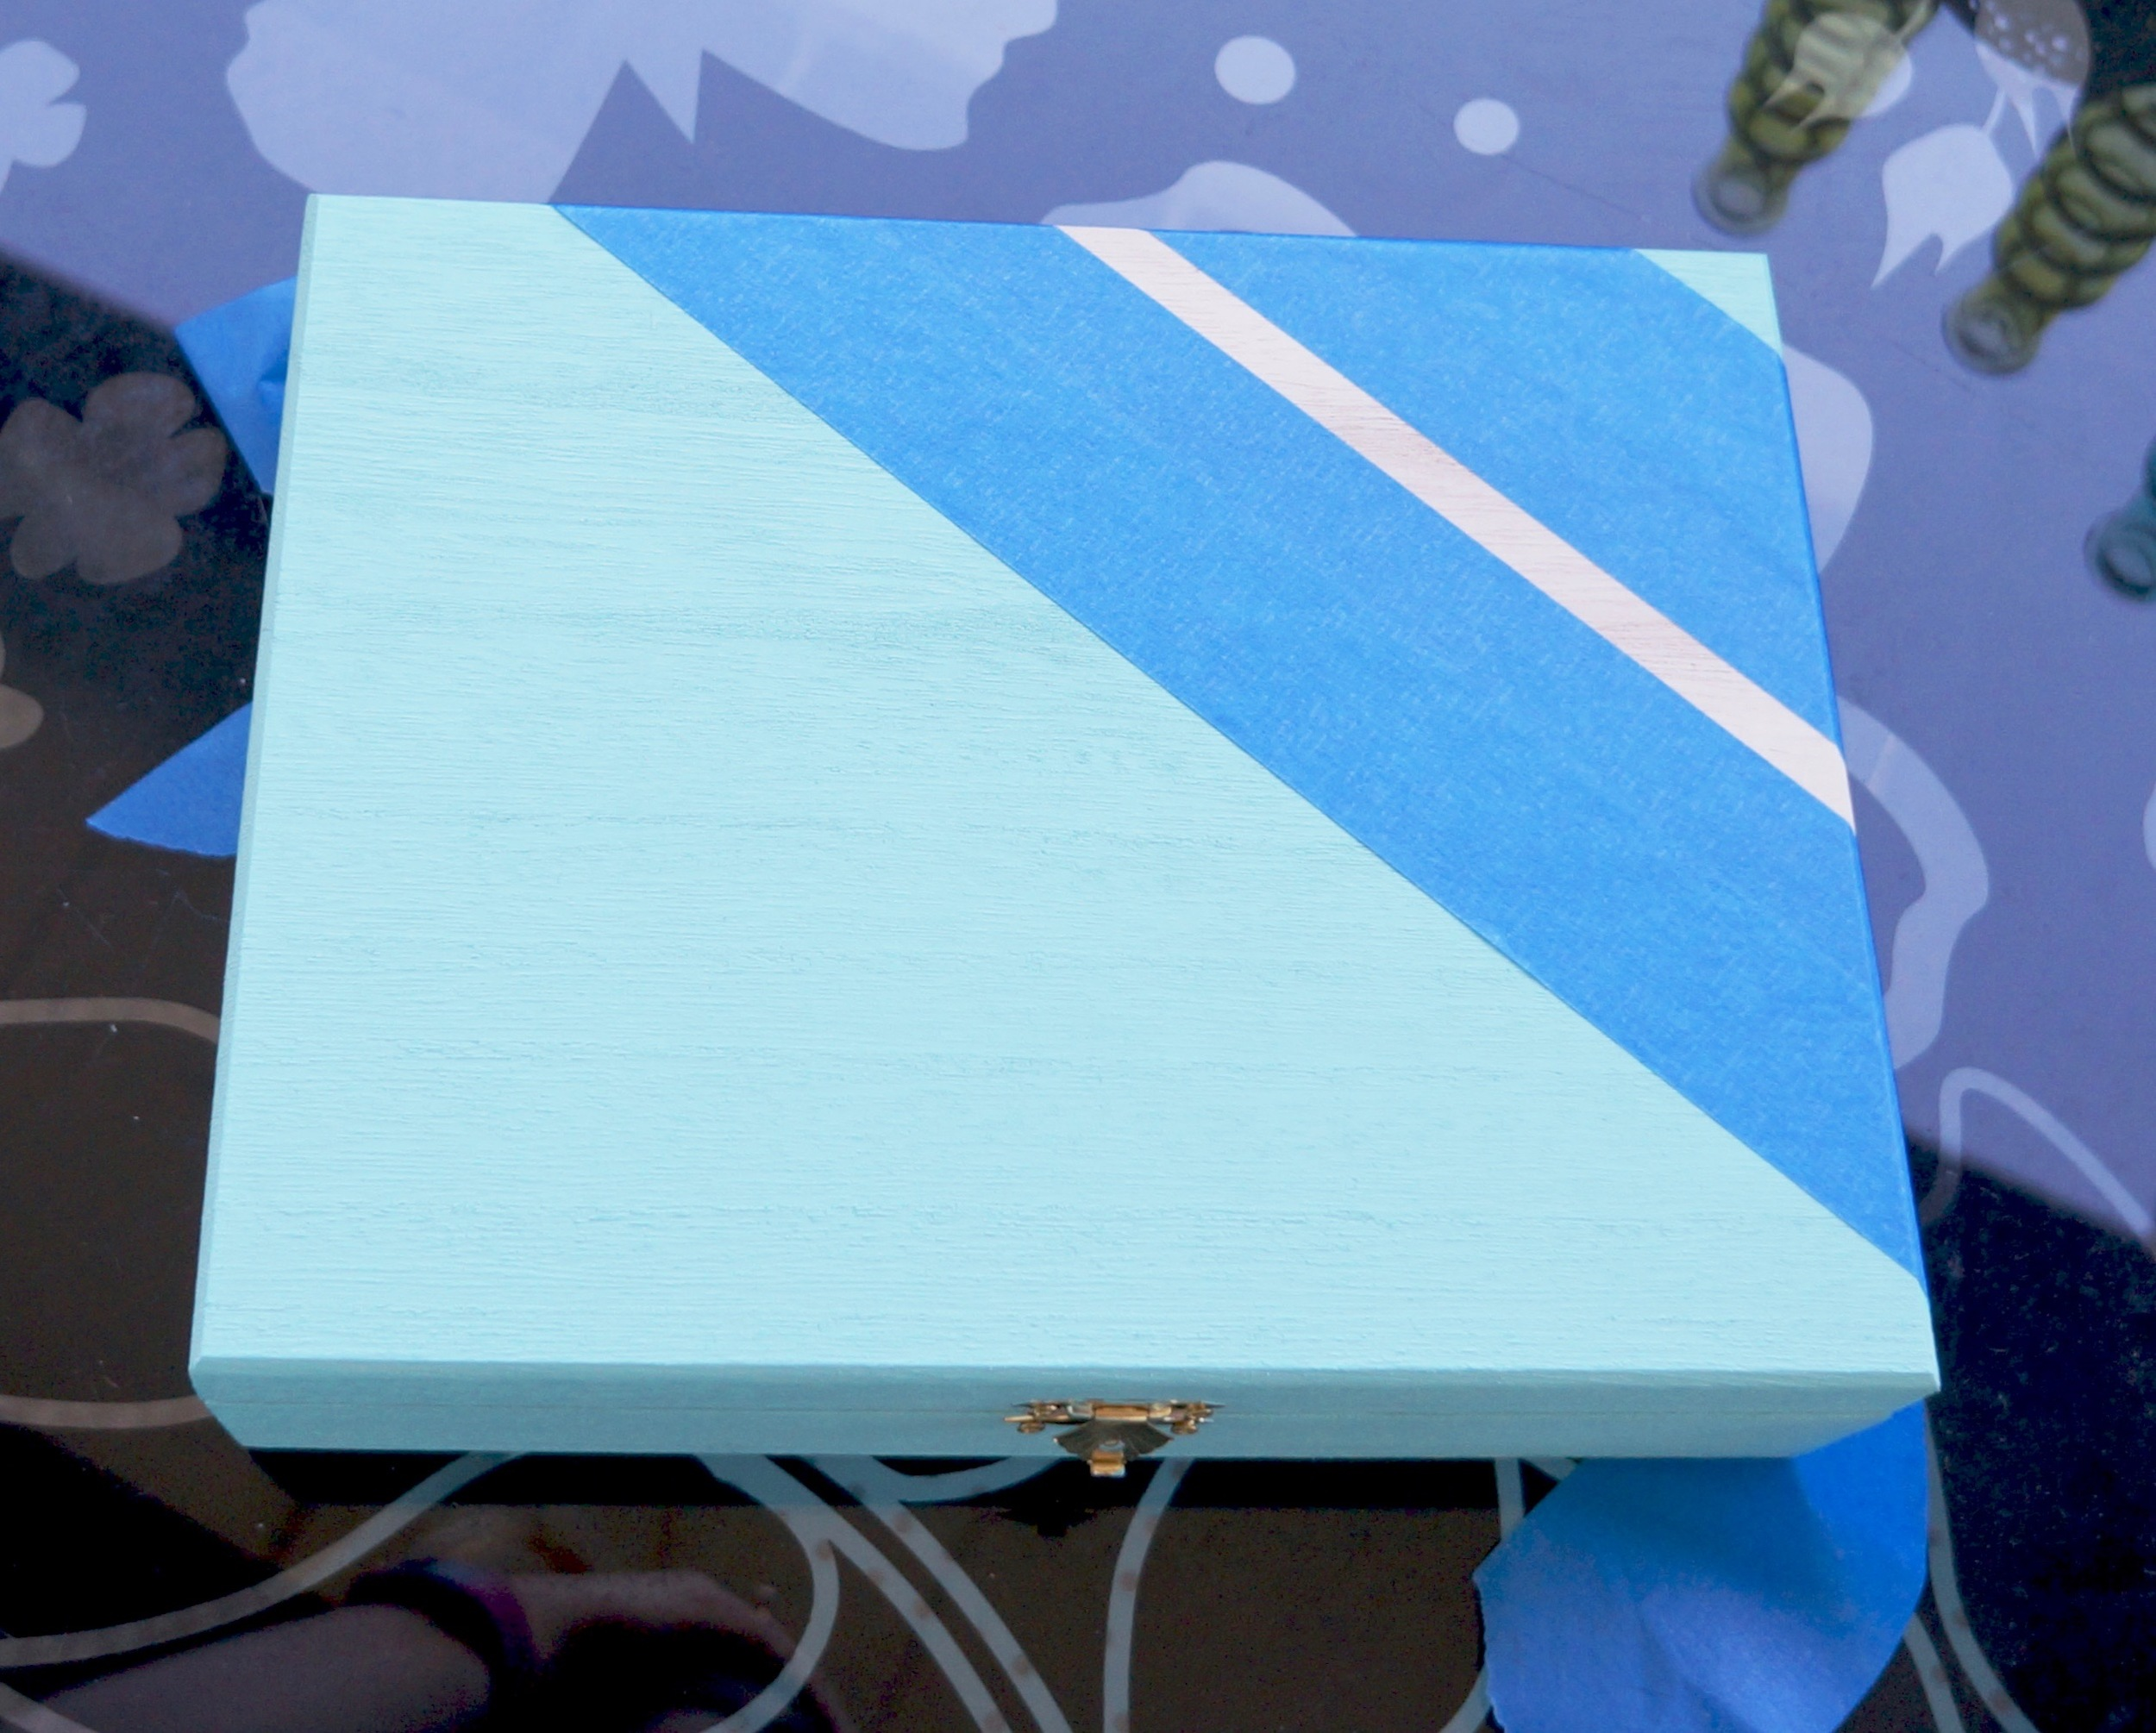 painters-tape-box-stripes.jpg